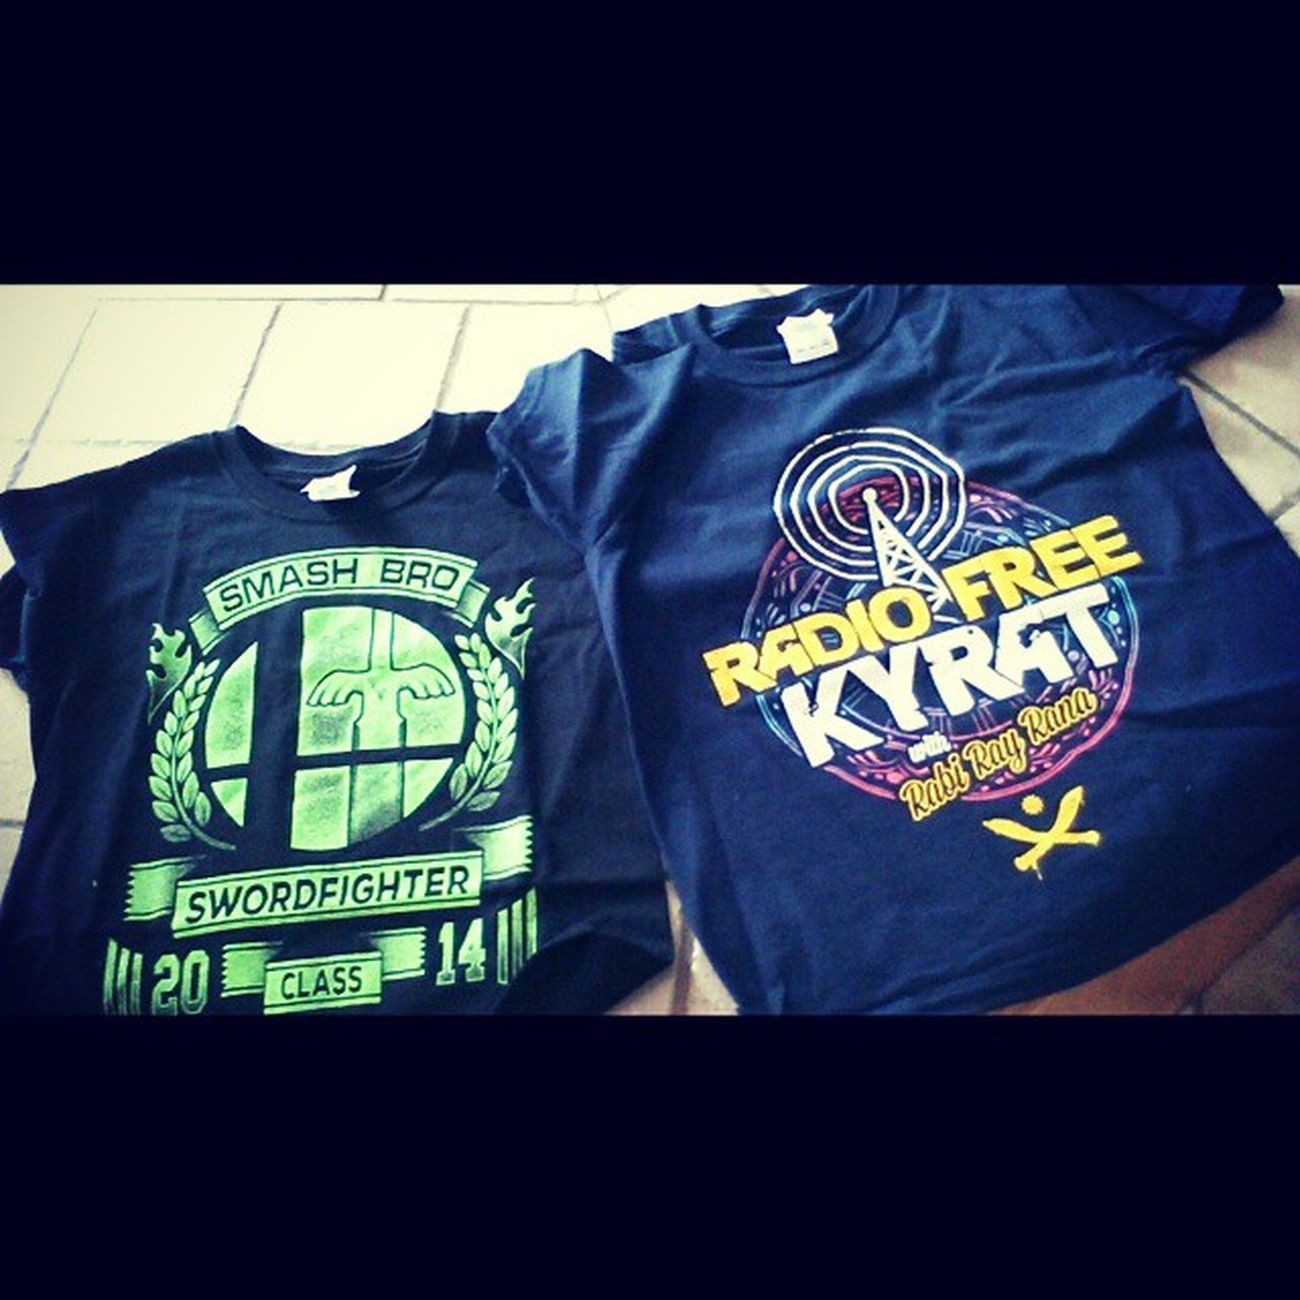 The awesome Shirtpunch tees my minion got in his Arcadeblock Nerdblock